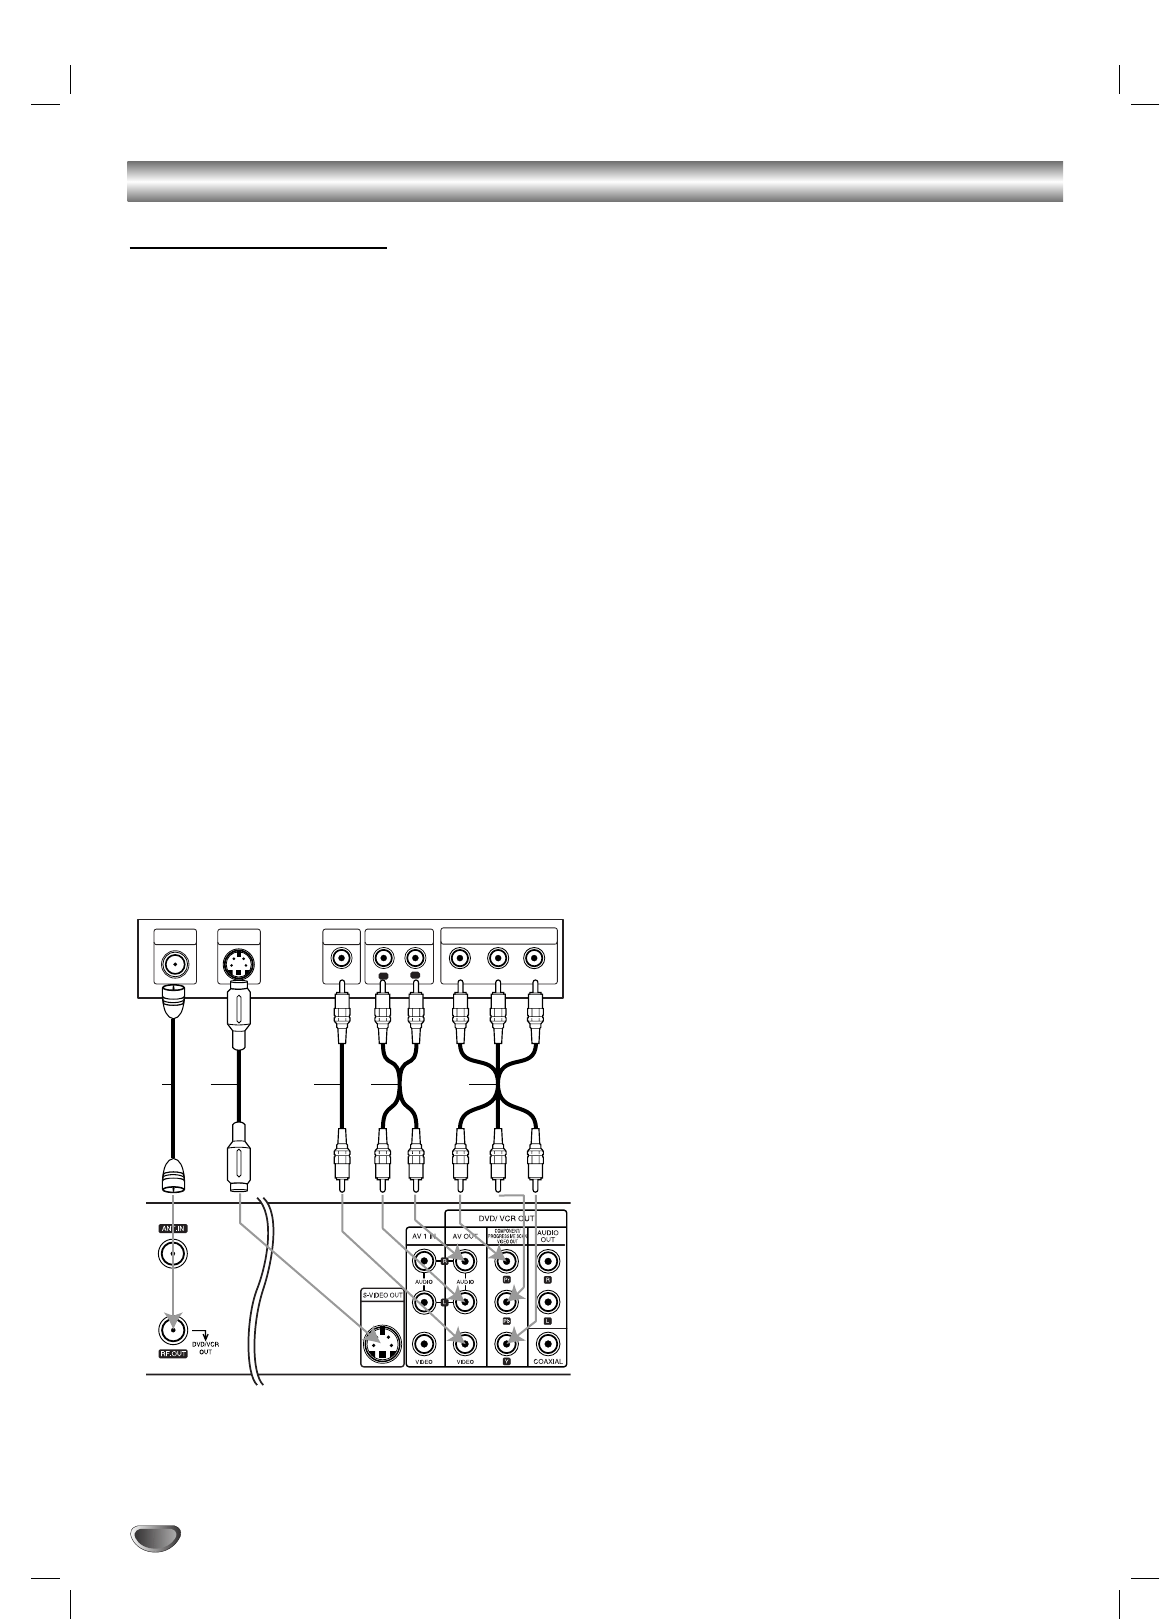 Page 16 of Zenith DVD VCR Combo XBR411 User Guide